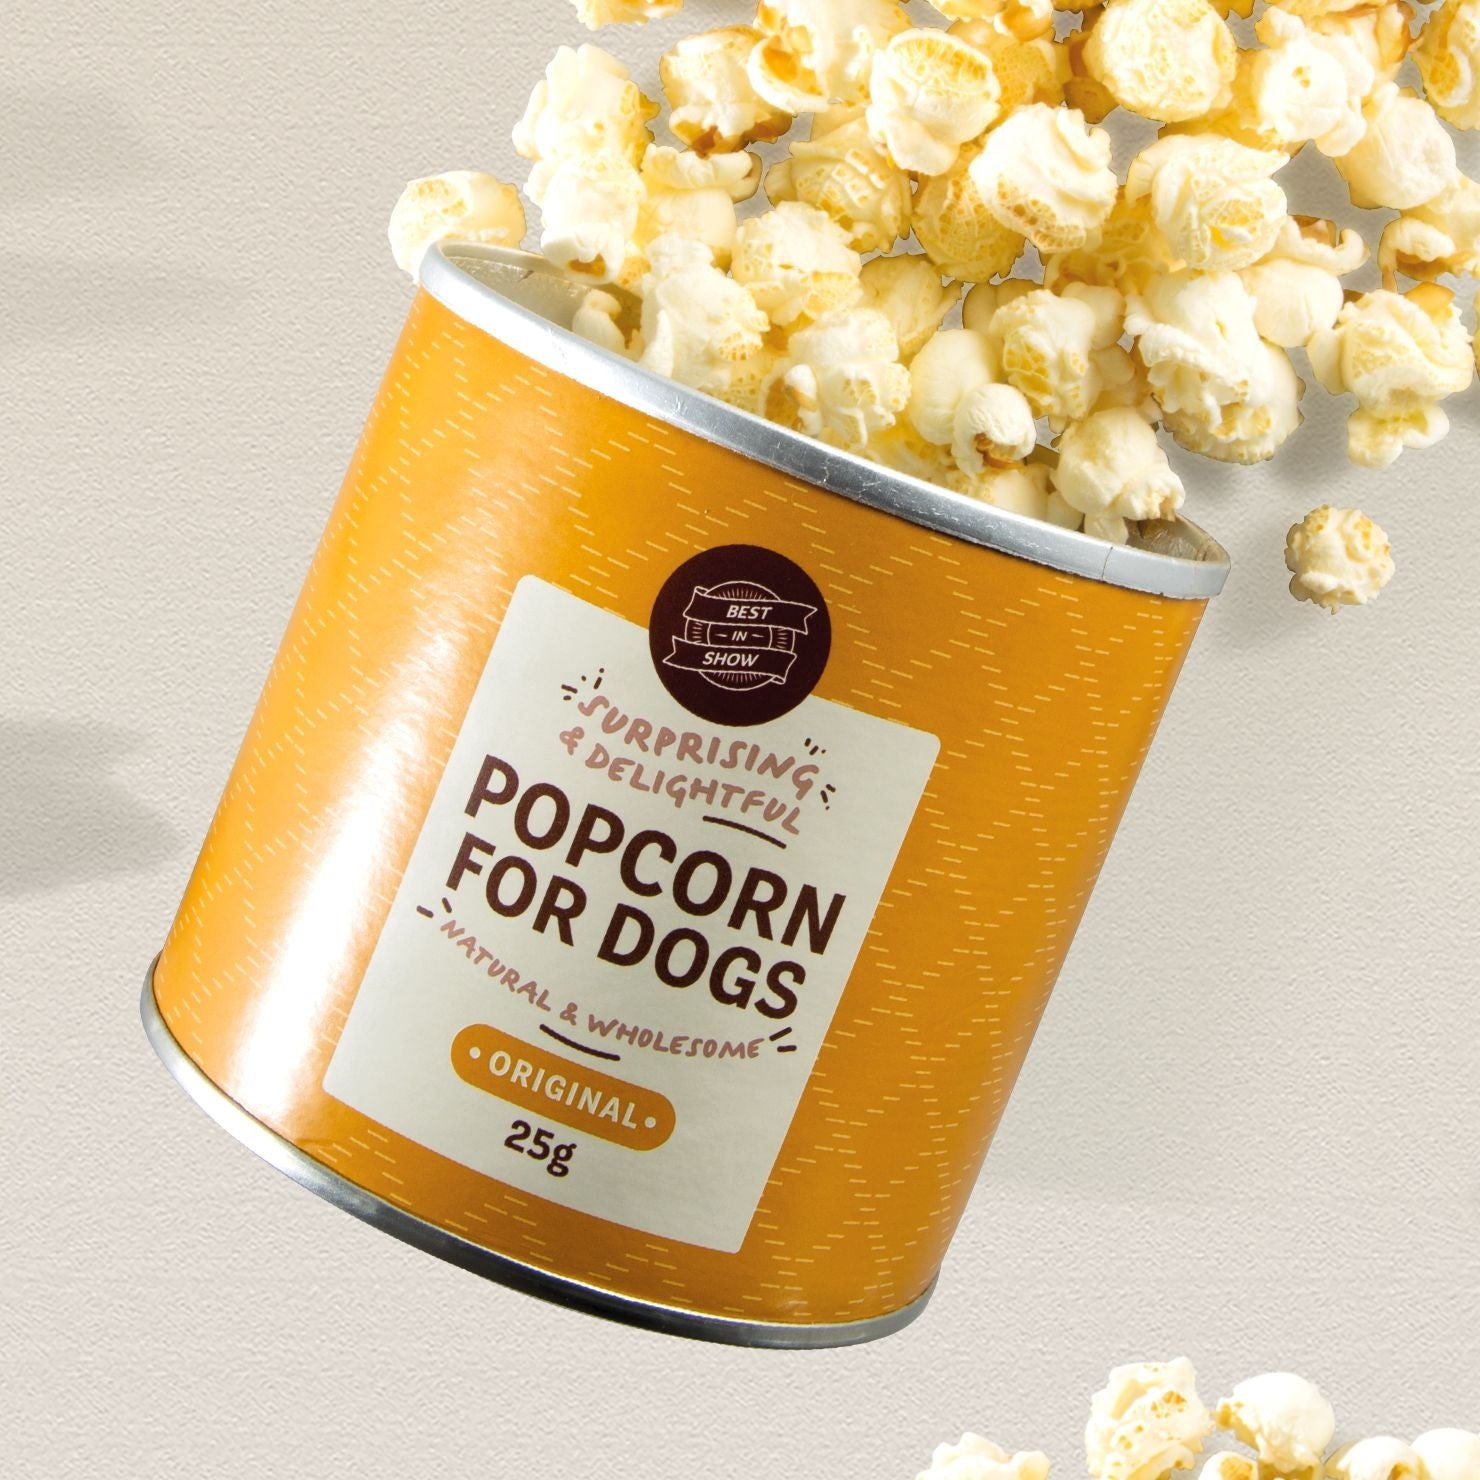 Popcorn for Dogs